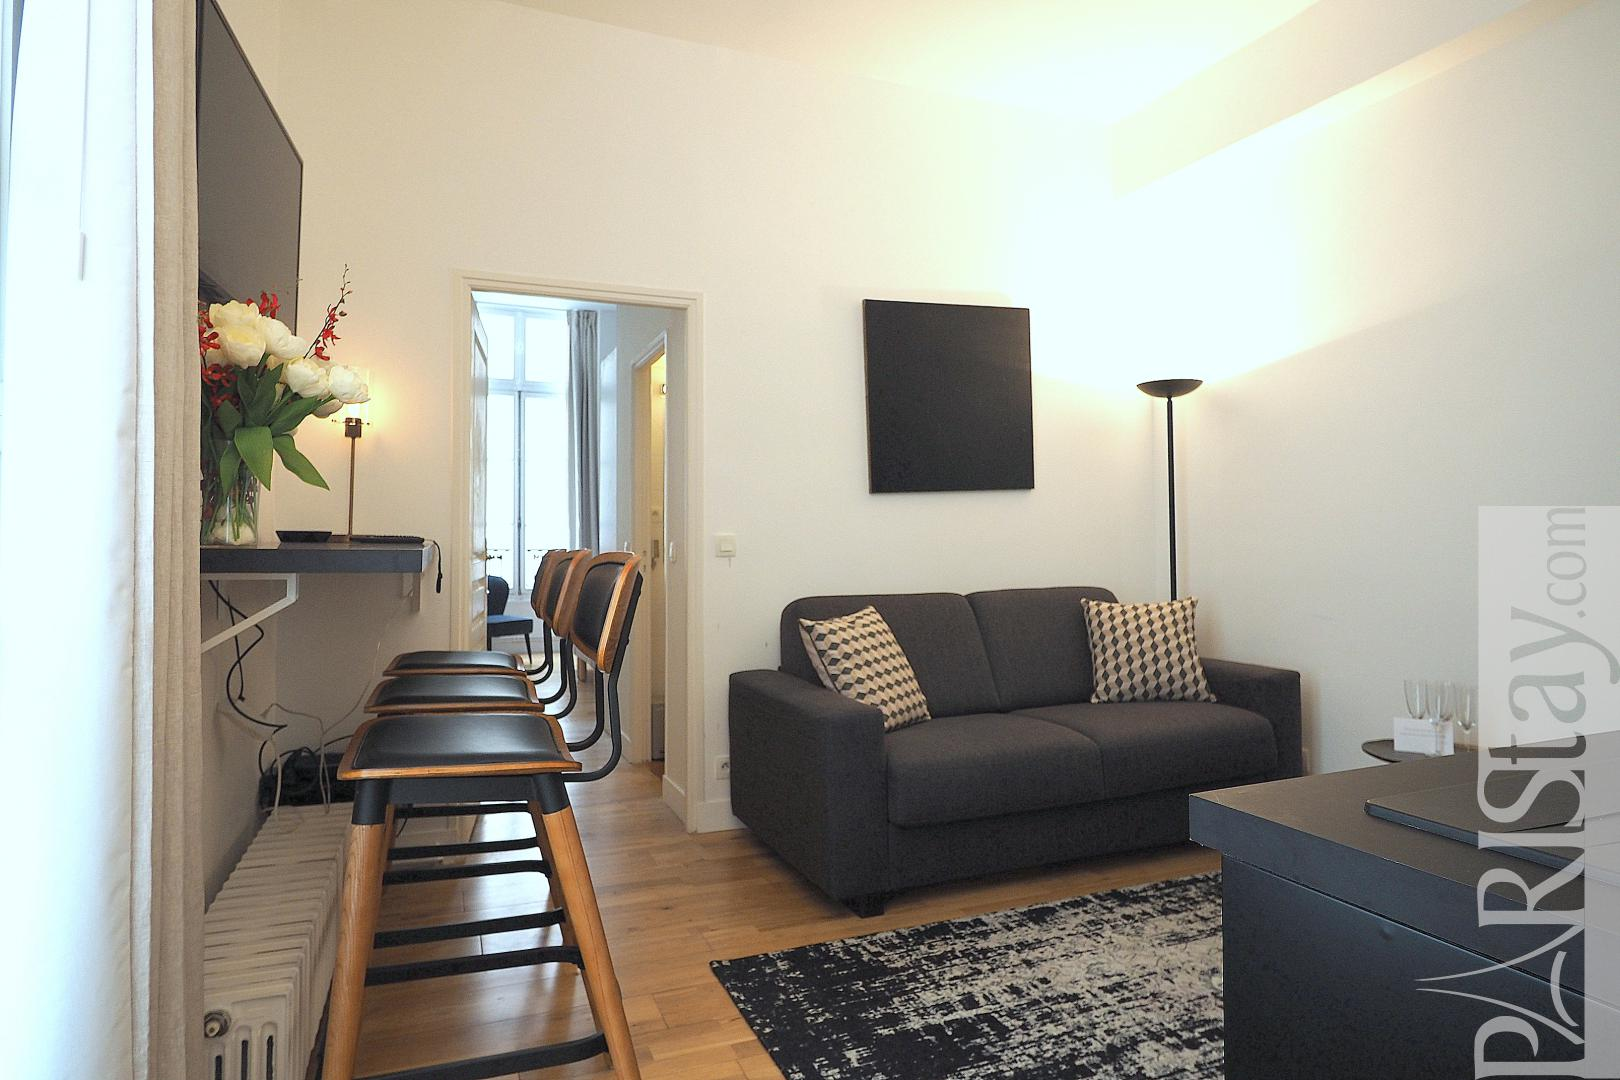 Groovy Paris Furnished Flat For Rent 2 Bedroom Apartment For Rent Beutiful Home Inspiration Xortanetmahrainfo